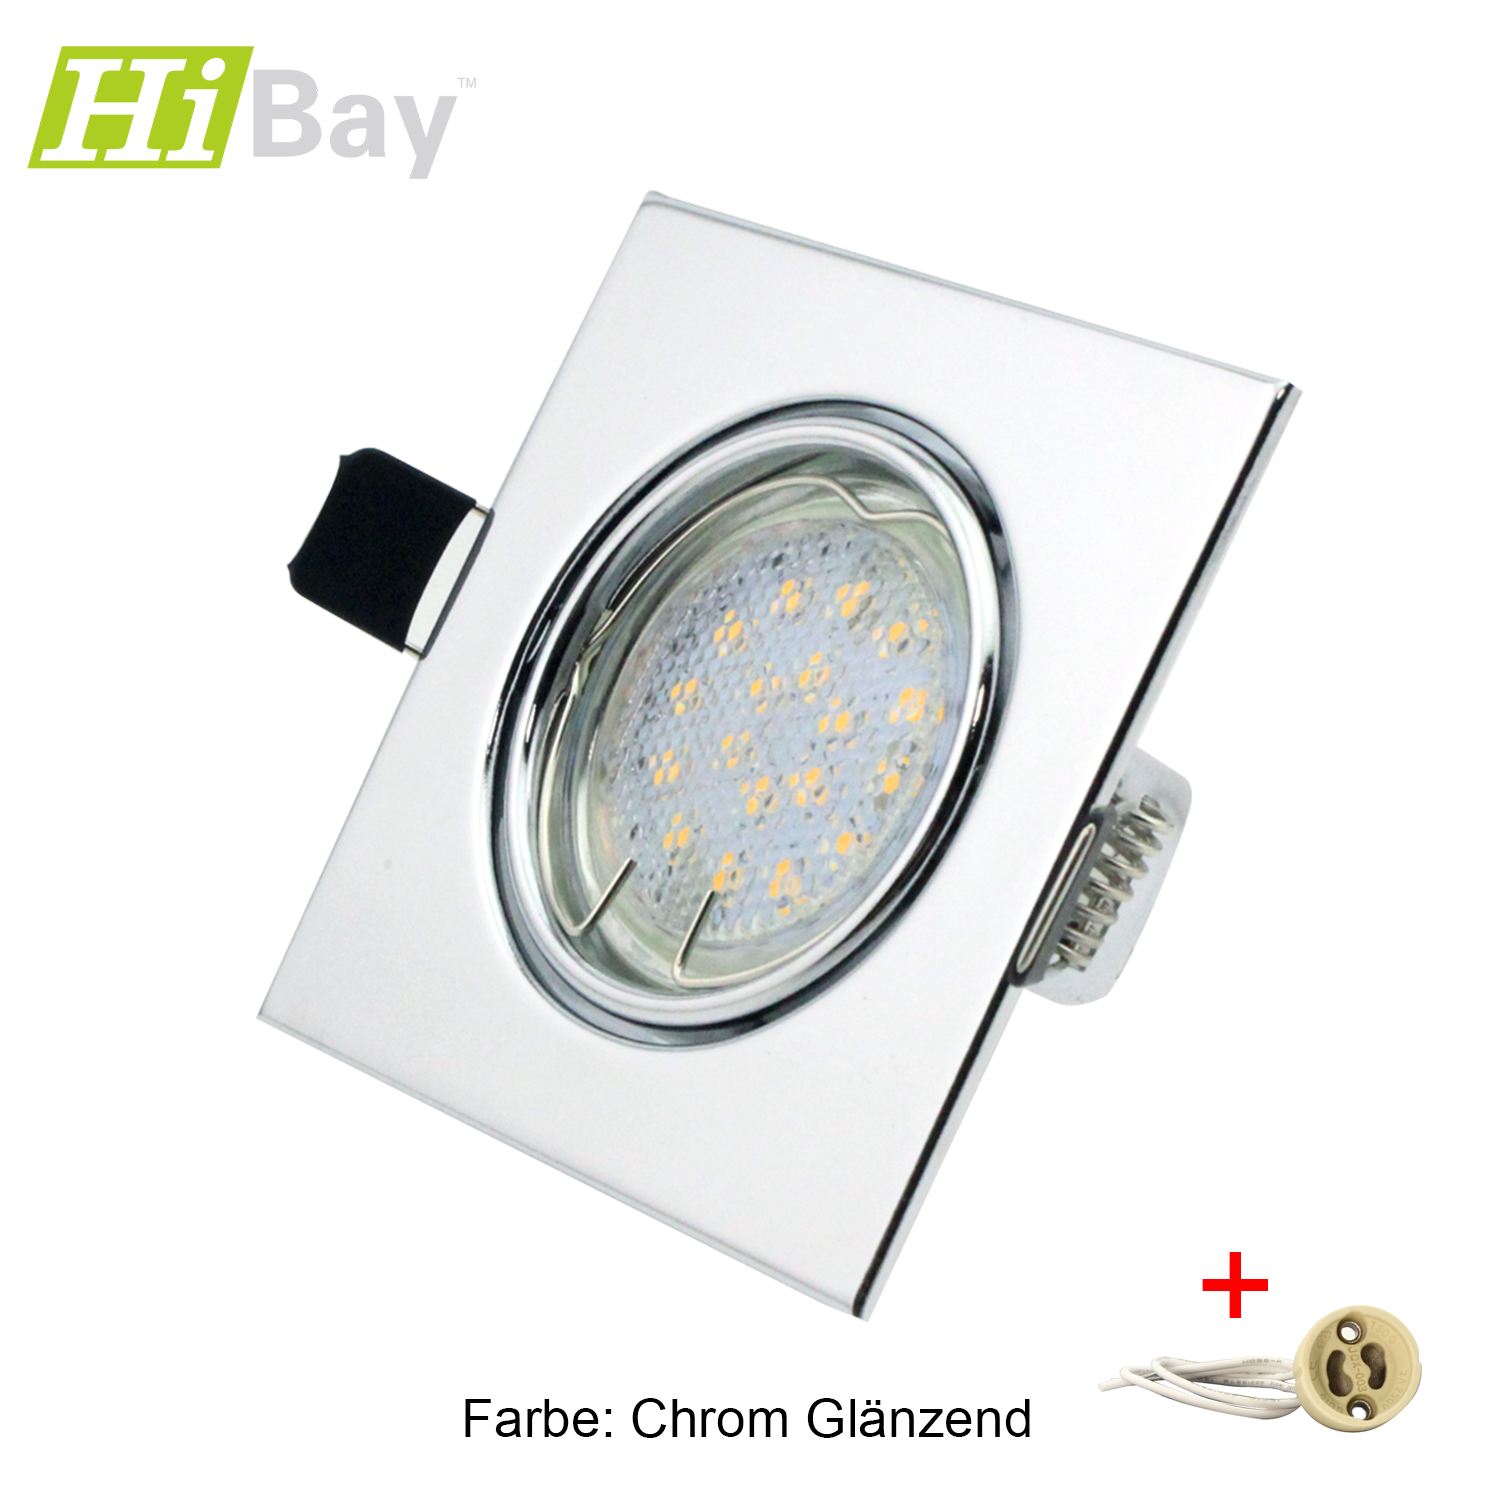 eckig led set einbaustrahler 5w gu10 smd einbaurahmen fassung weiss chrom ebay. Black Bedroom Furniture Sets. Home Design Ideas